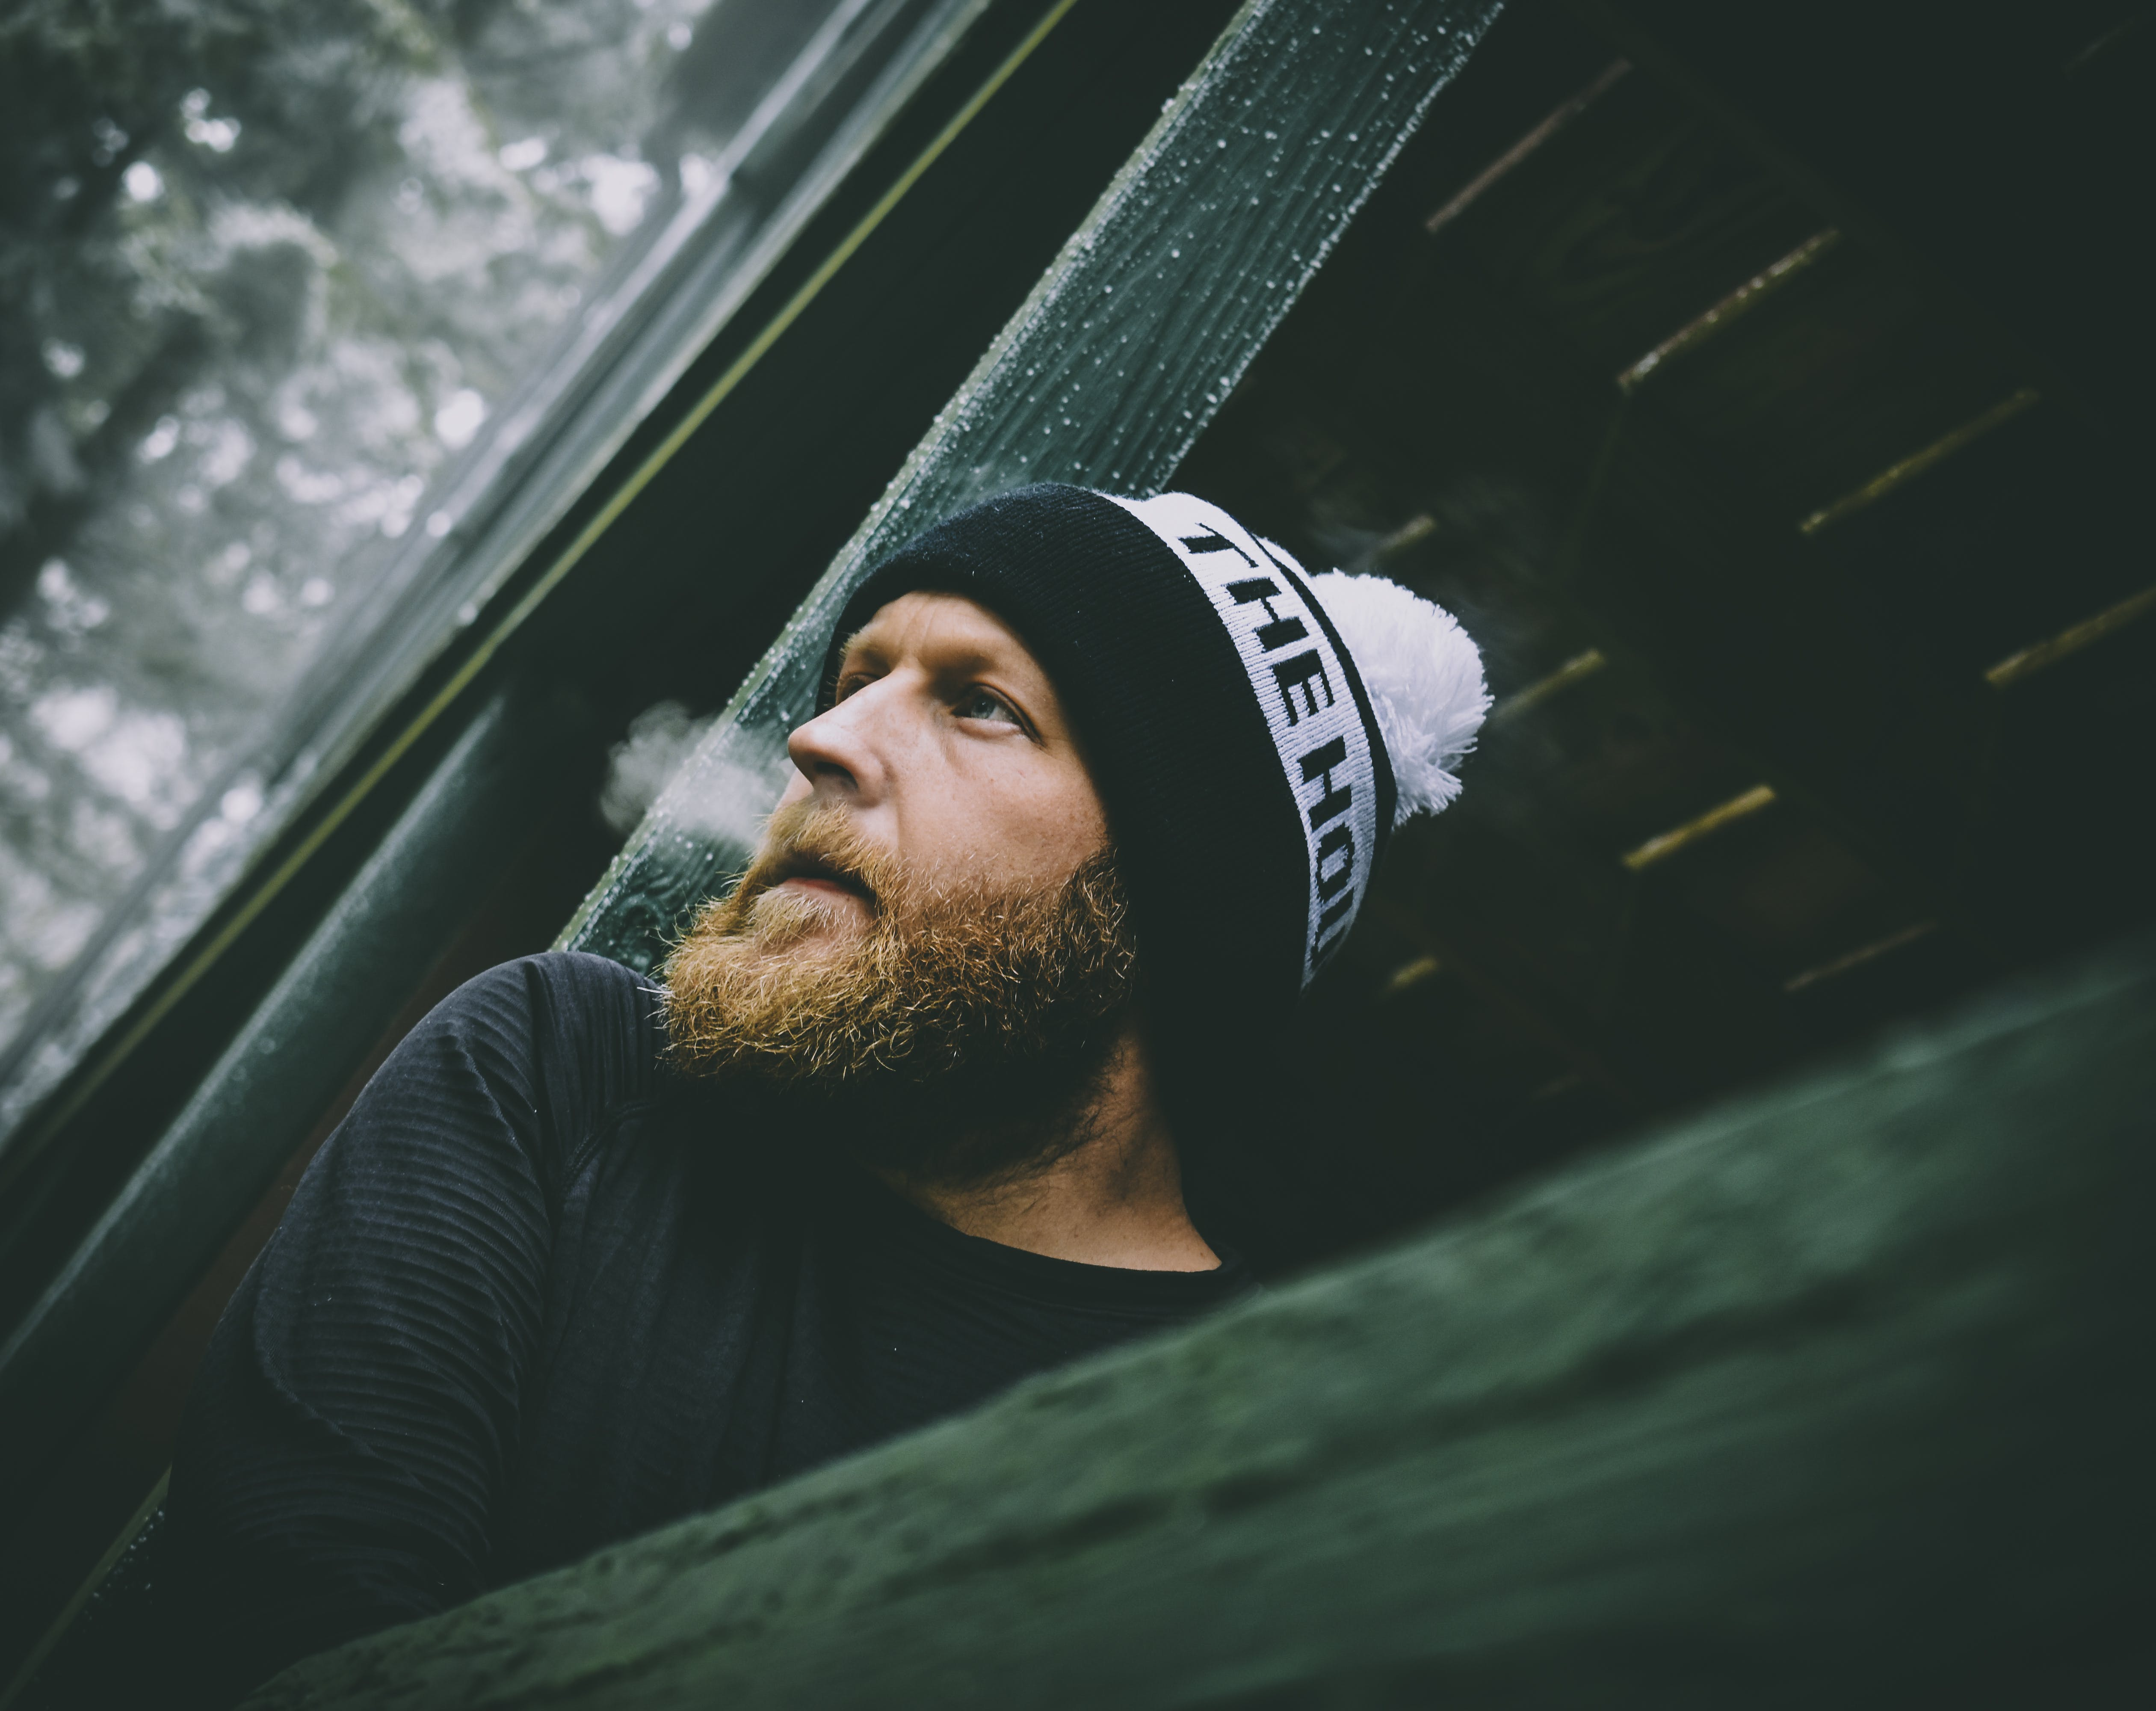 Man Wearing Beanie and Sweater